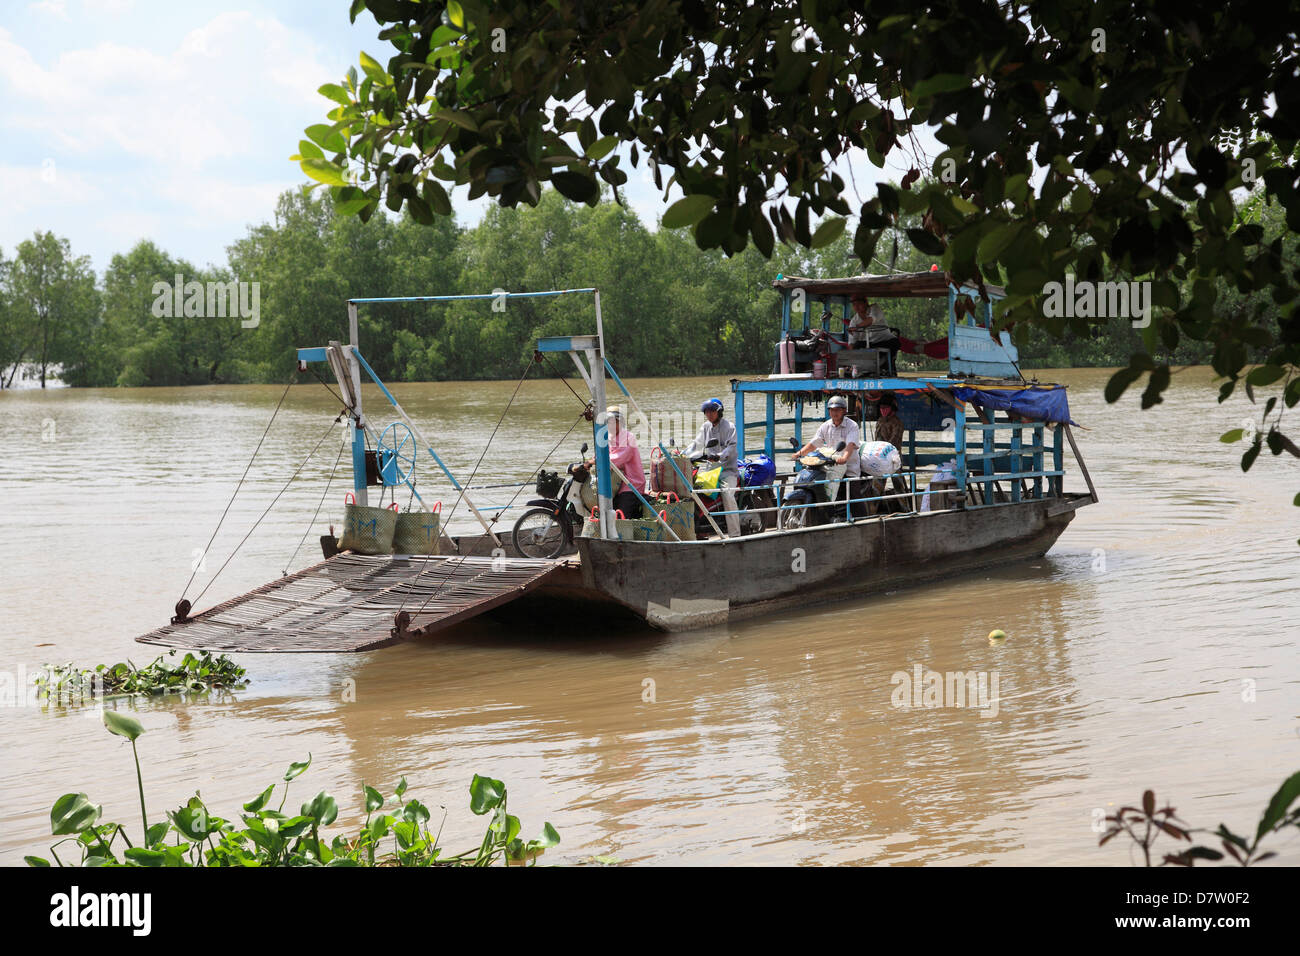 Local ferry, Mekong River, Mekong Delta, Vinh Long Province, Vietnam, Indochina, Southeast Asia - Stock Image